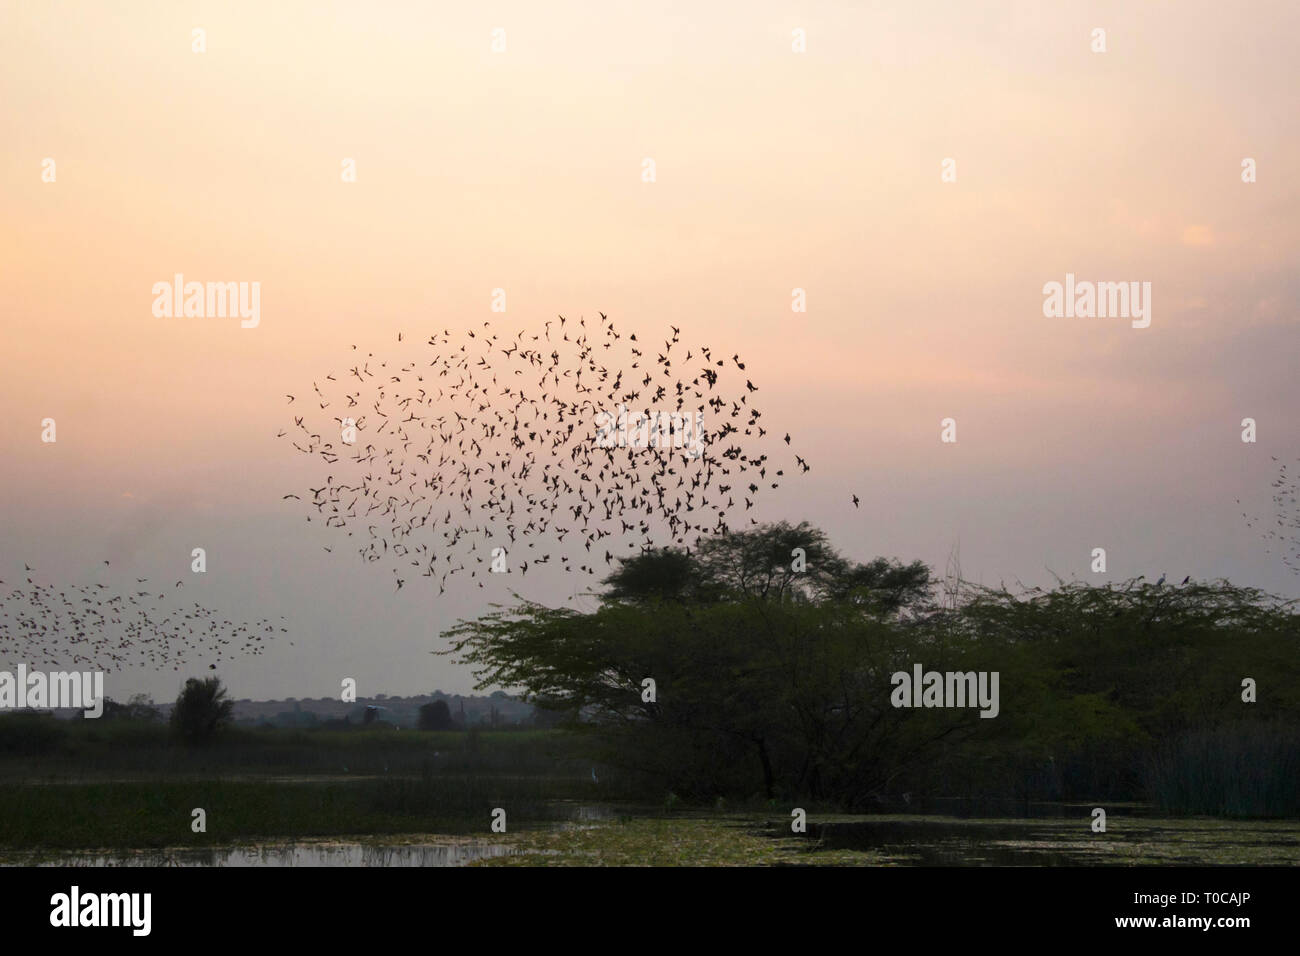 Bramhini starling formations in the sky, India. - Stock Image